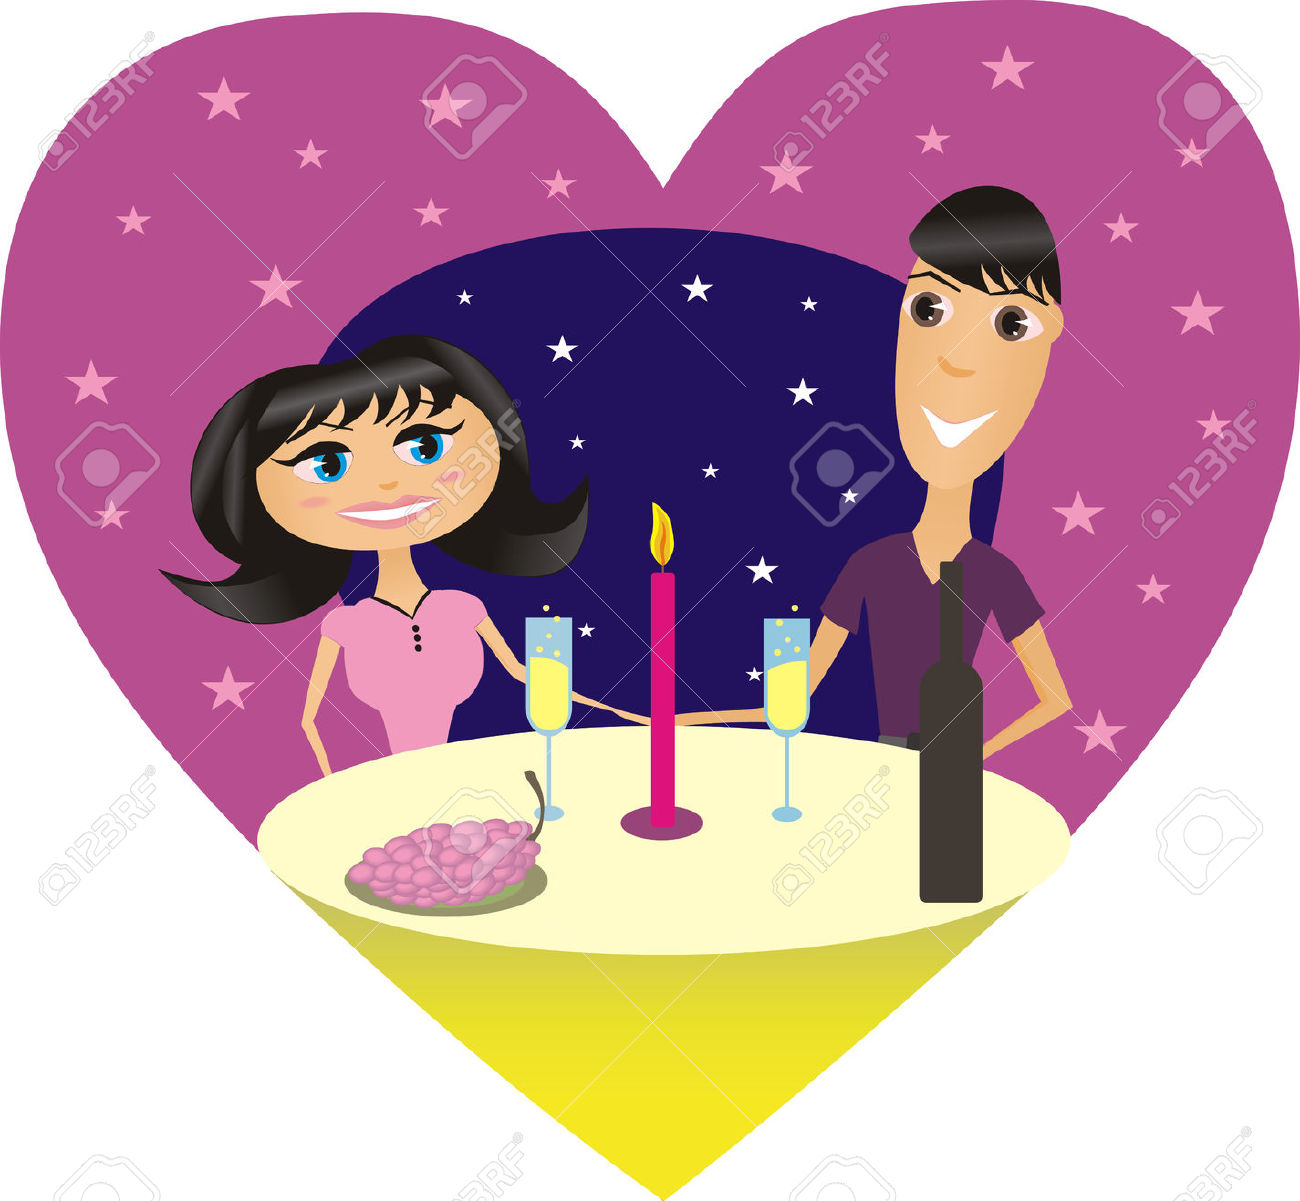 Illustration Of A Romantic Supper Of Happy Couple/ Royalty Free.